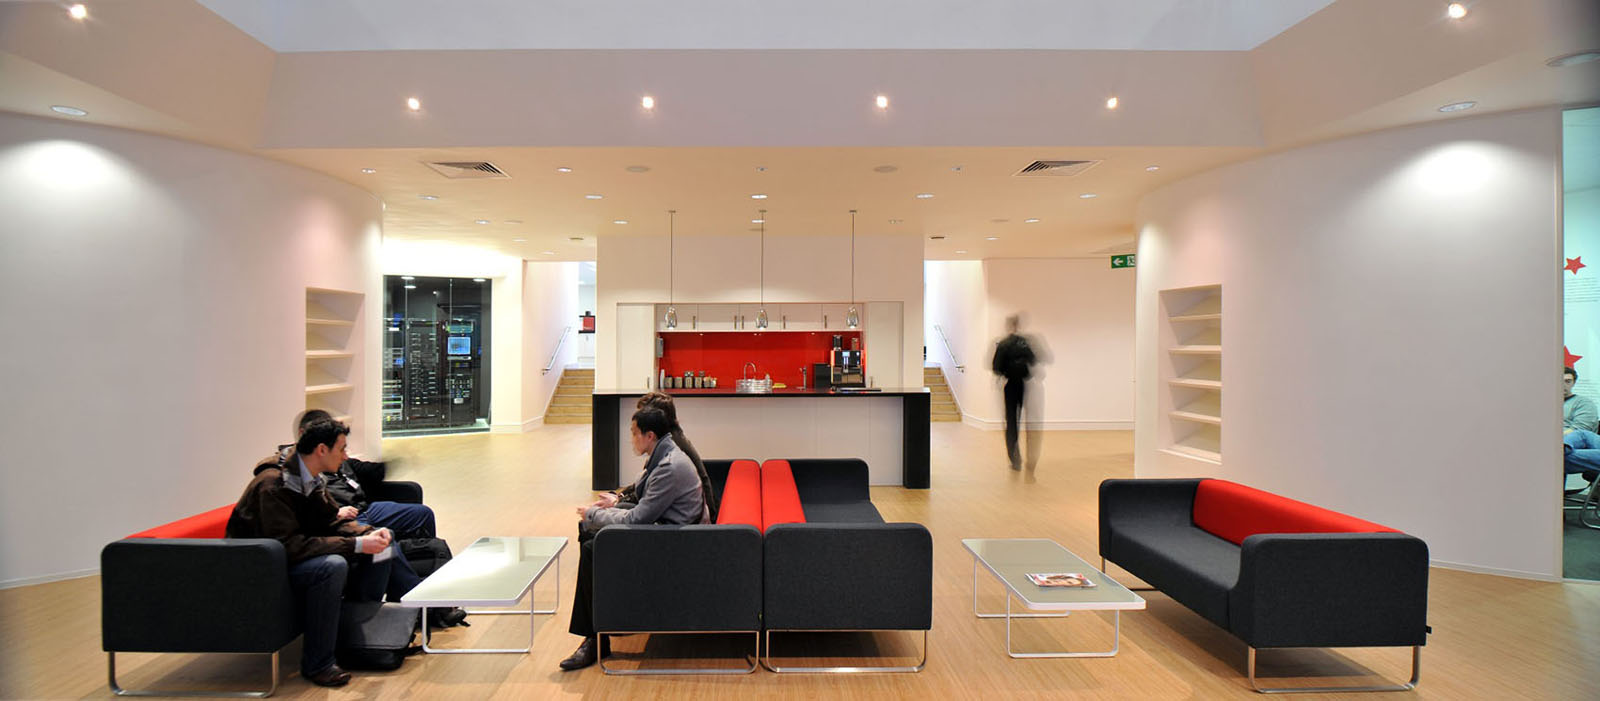 Inspiring british office interior design at rackspace for Interior design of office